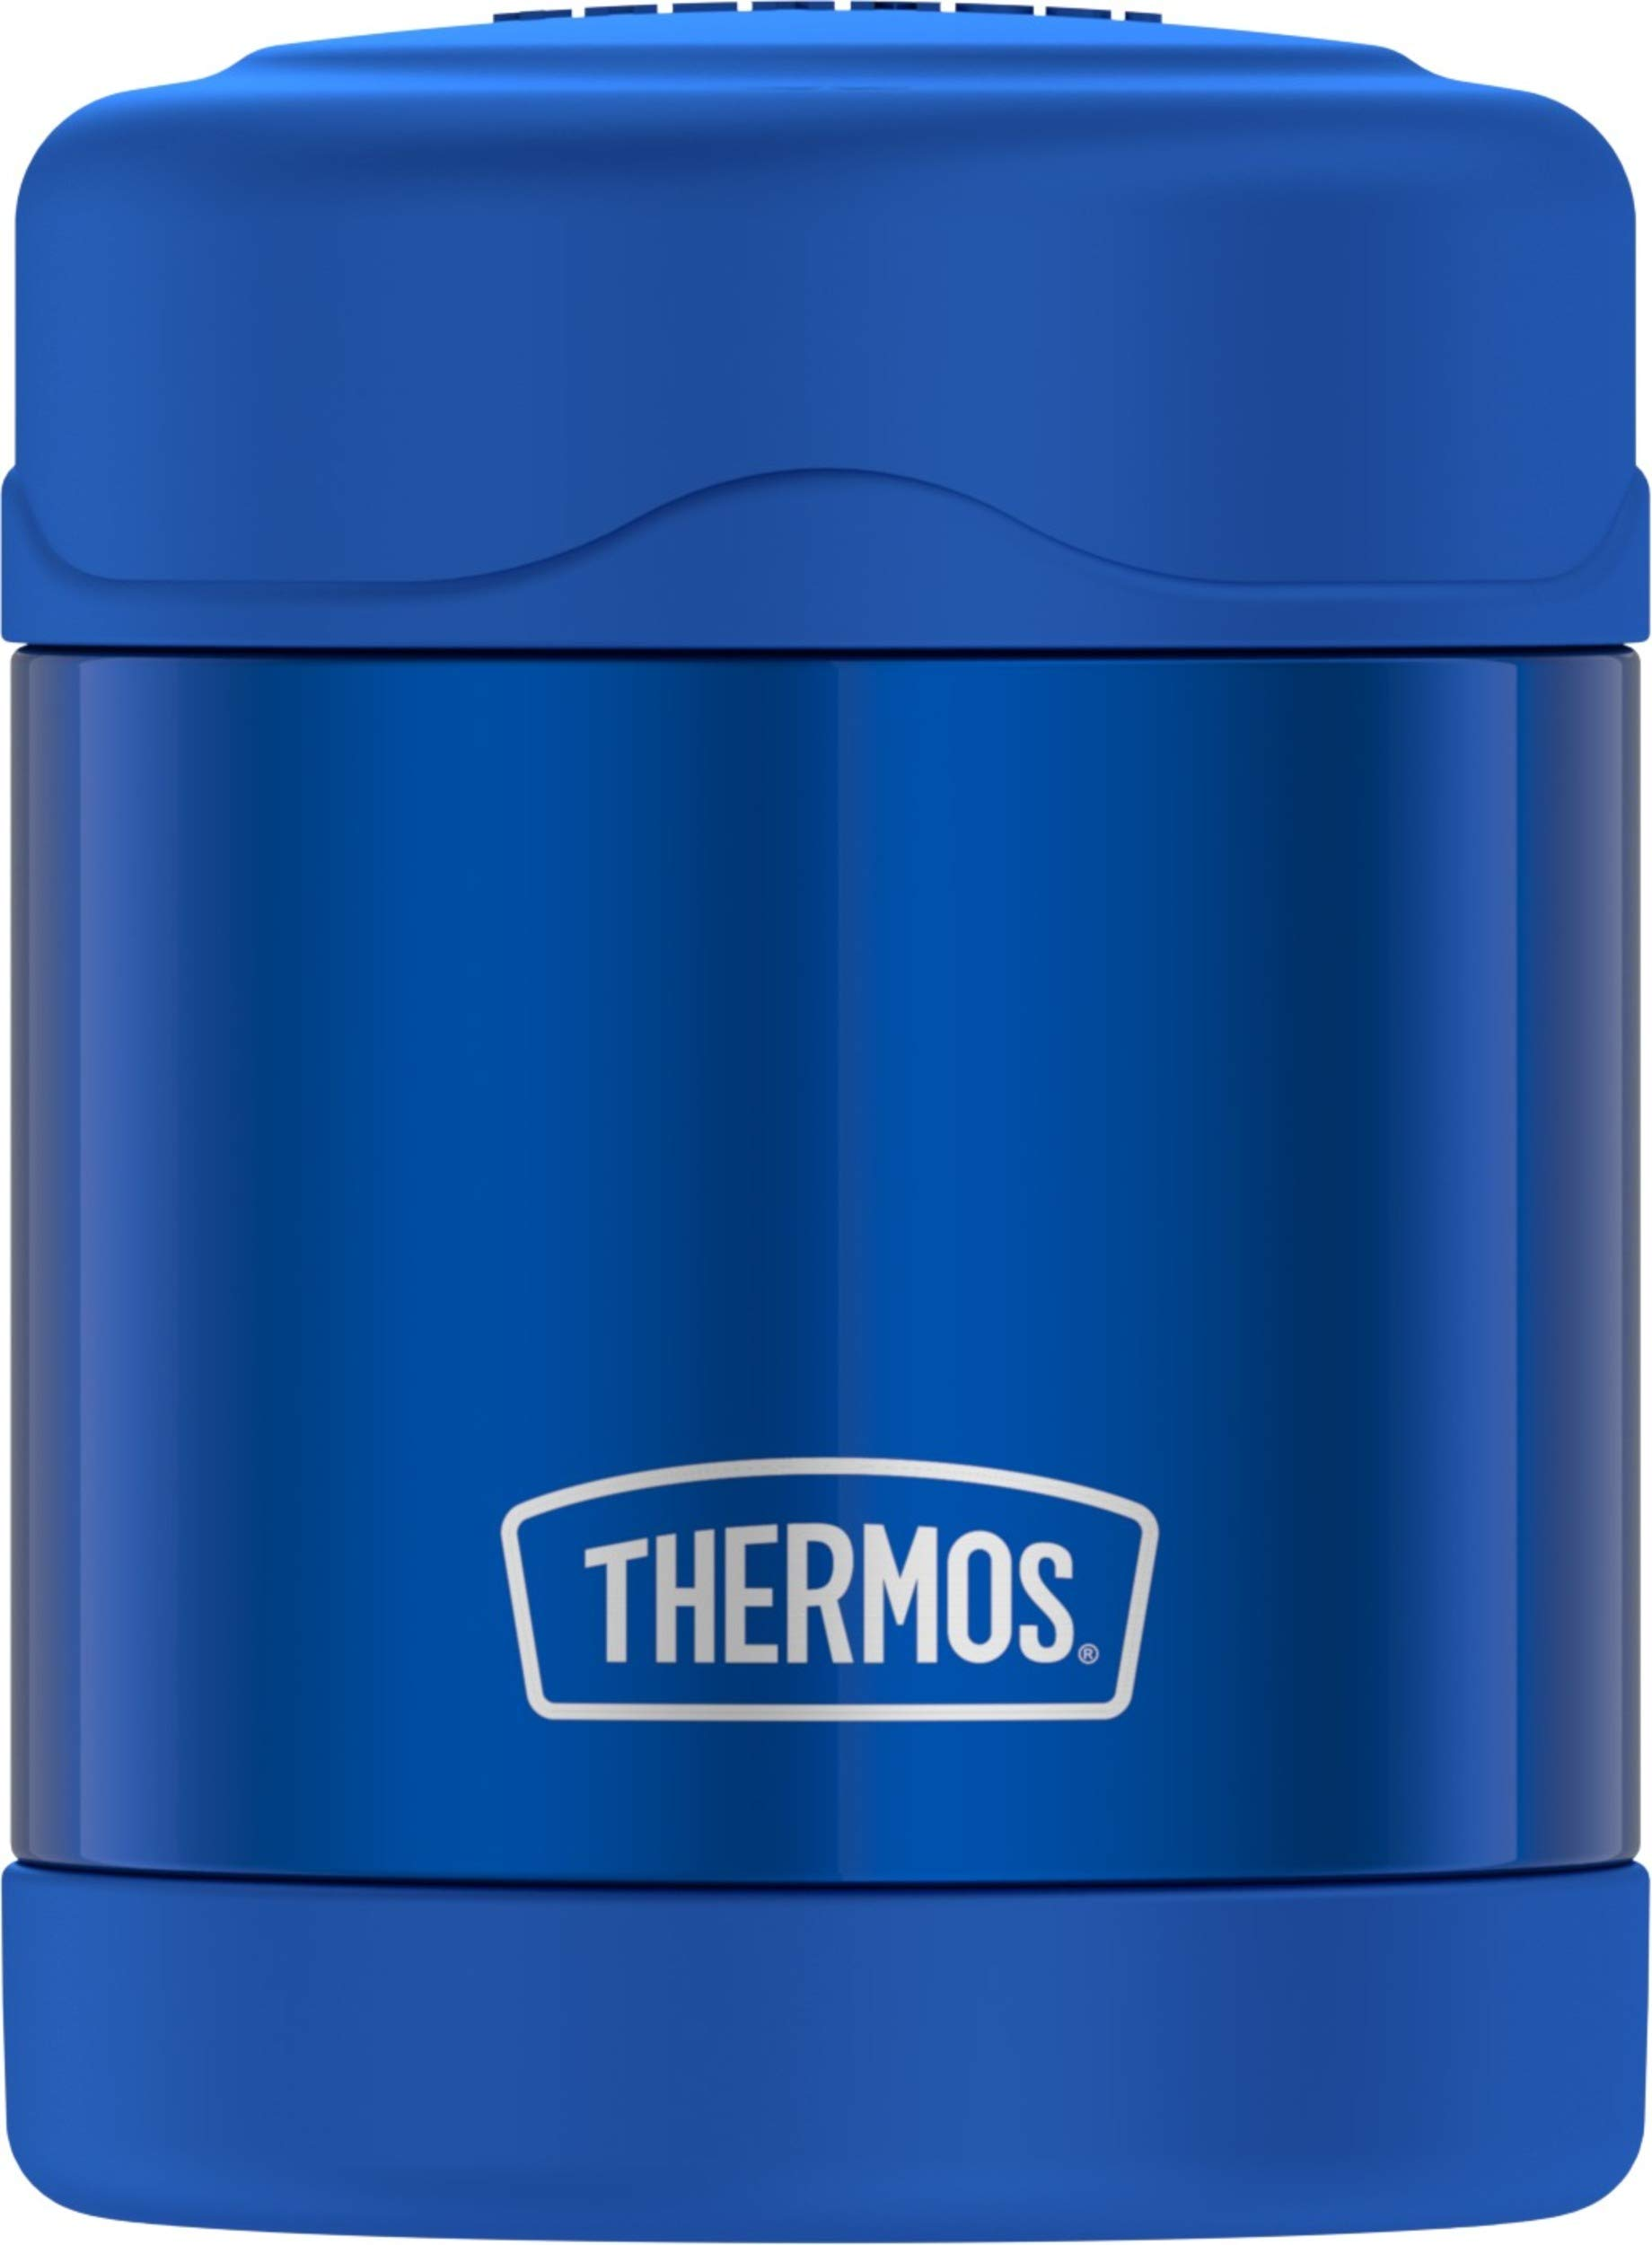 Thermos Funtainer 10 Ounce Food Jar, Blue by Thermos